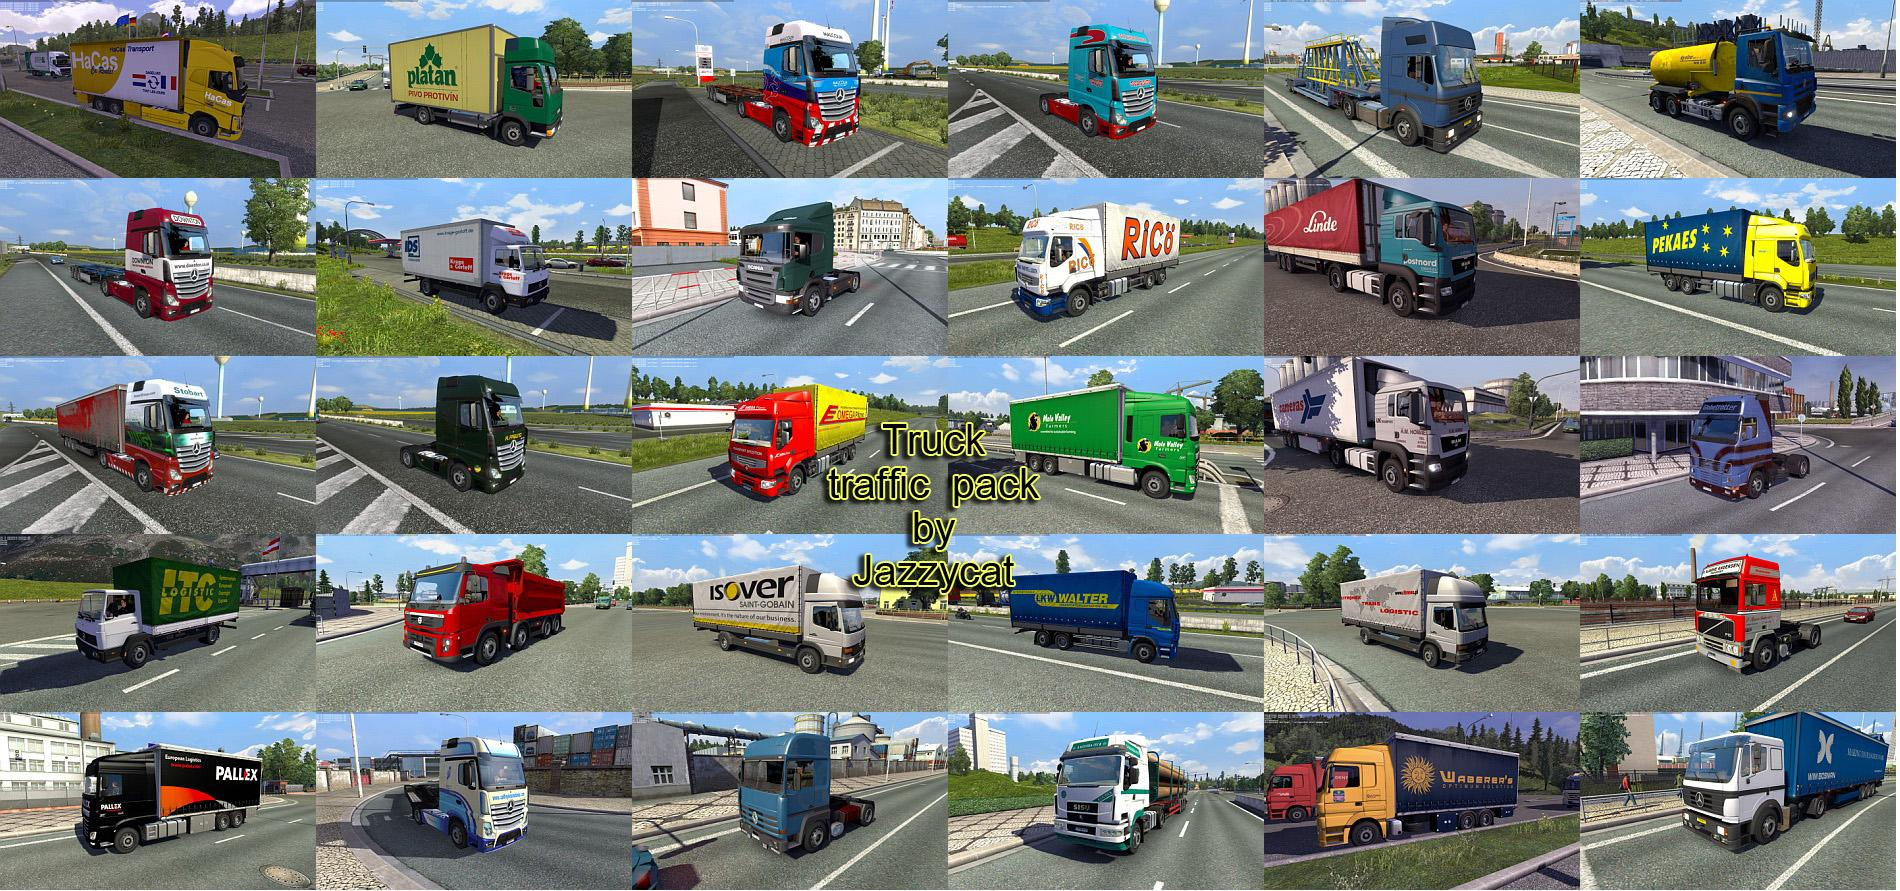 truck-traffic-pack-by-jazzycat-v1-8-2_2